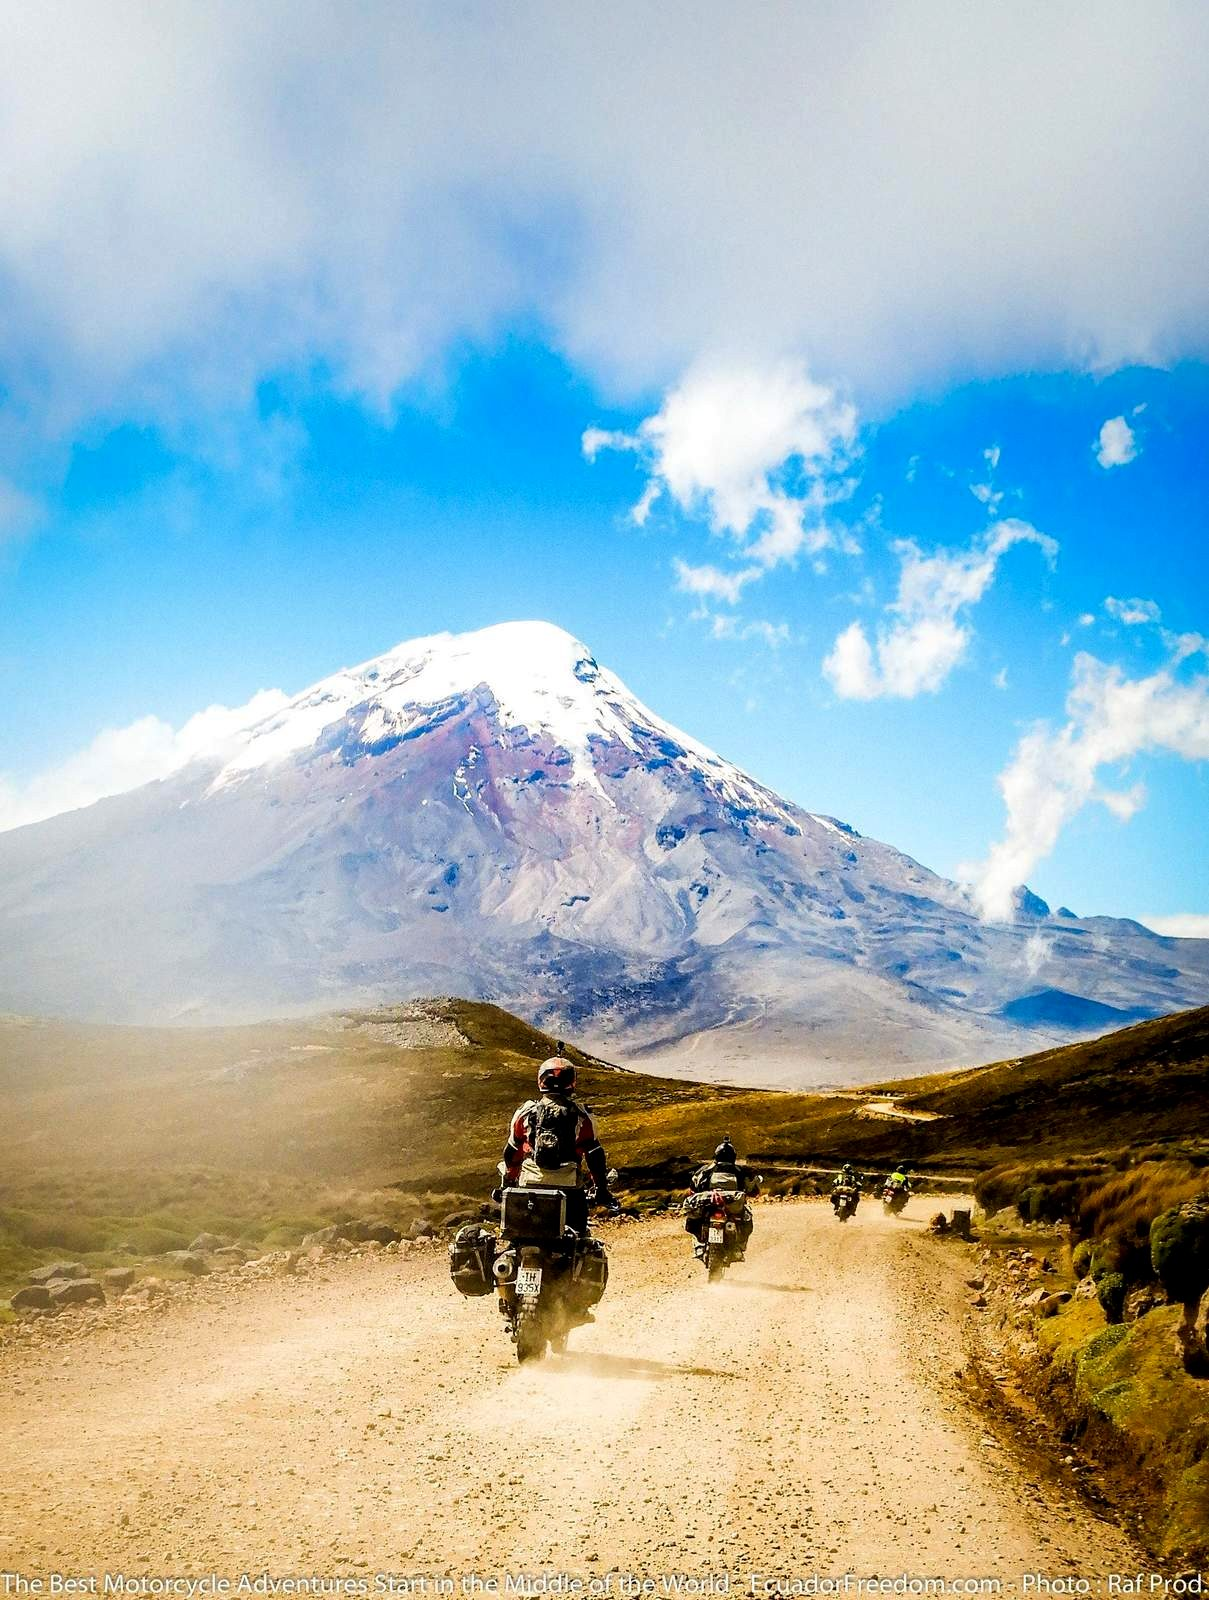 riding dual sport motorcycles towards Chimborazo on a dirt road in Ecuador